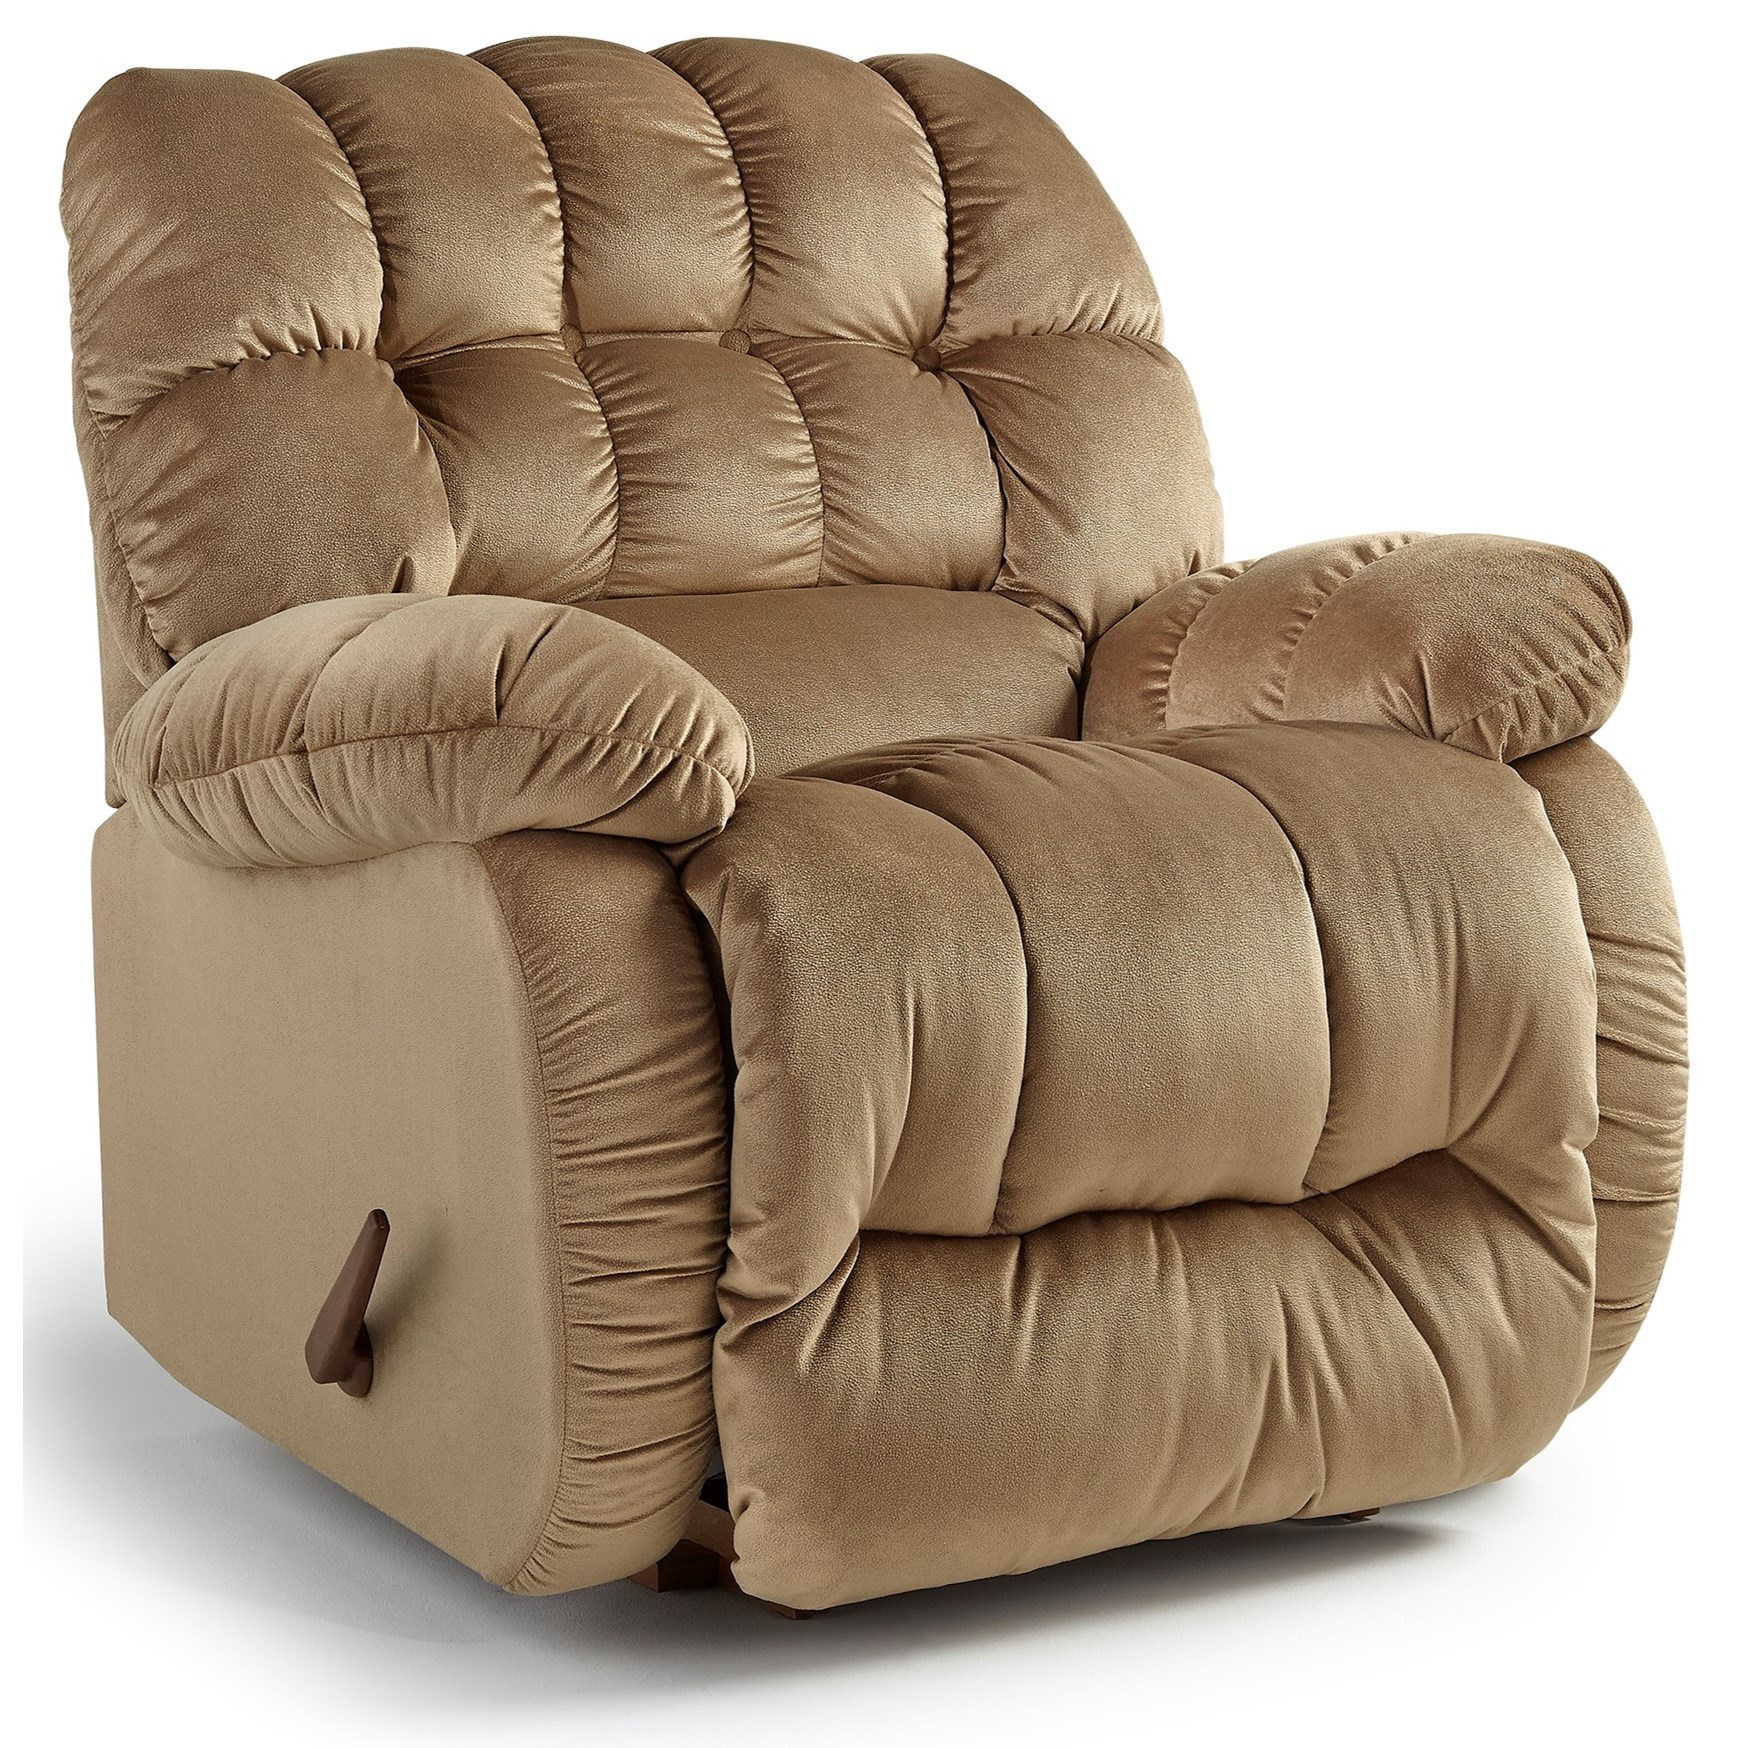 Best Home Furnishings Recliners - The Beast Roscoe Beast Rocker Recliner  sc 1 st  Local Furniture Retailers & Best Home Furnishings Recliners - The Beast Roscoe Beast Rocker ... islam-shia.org